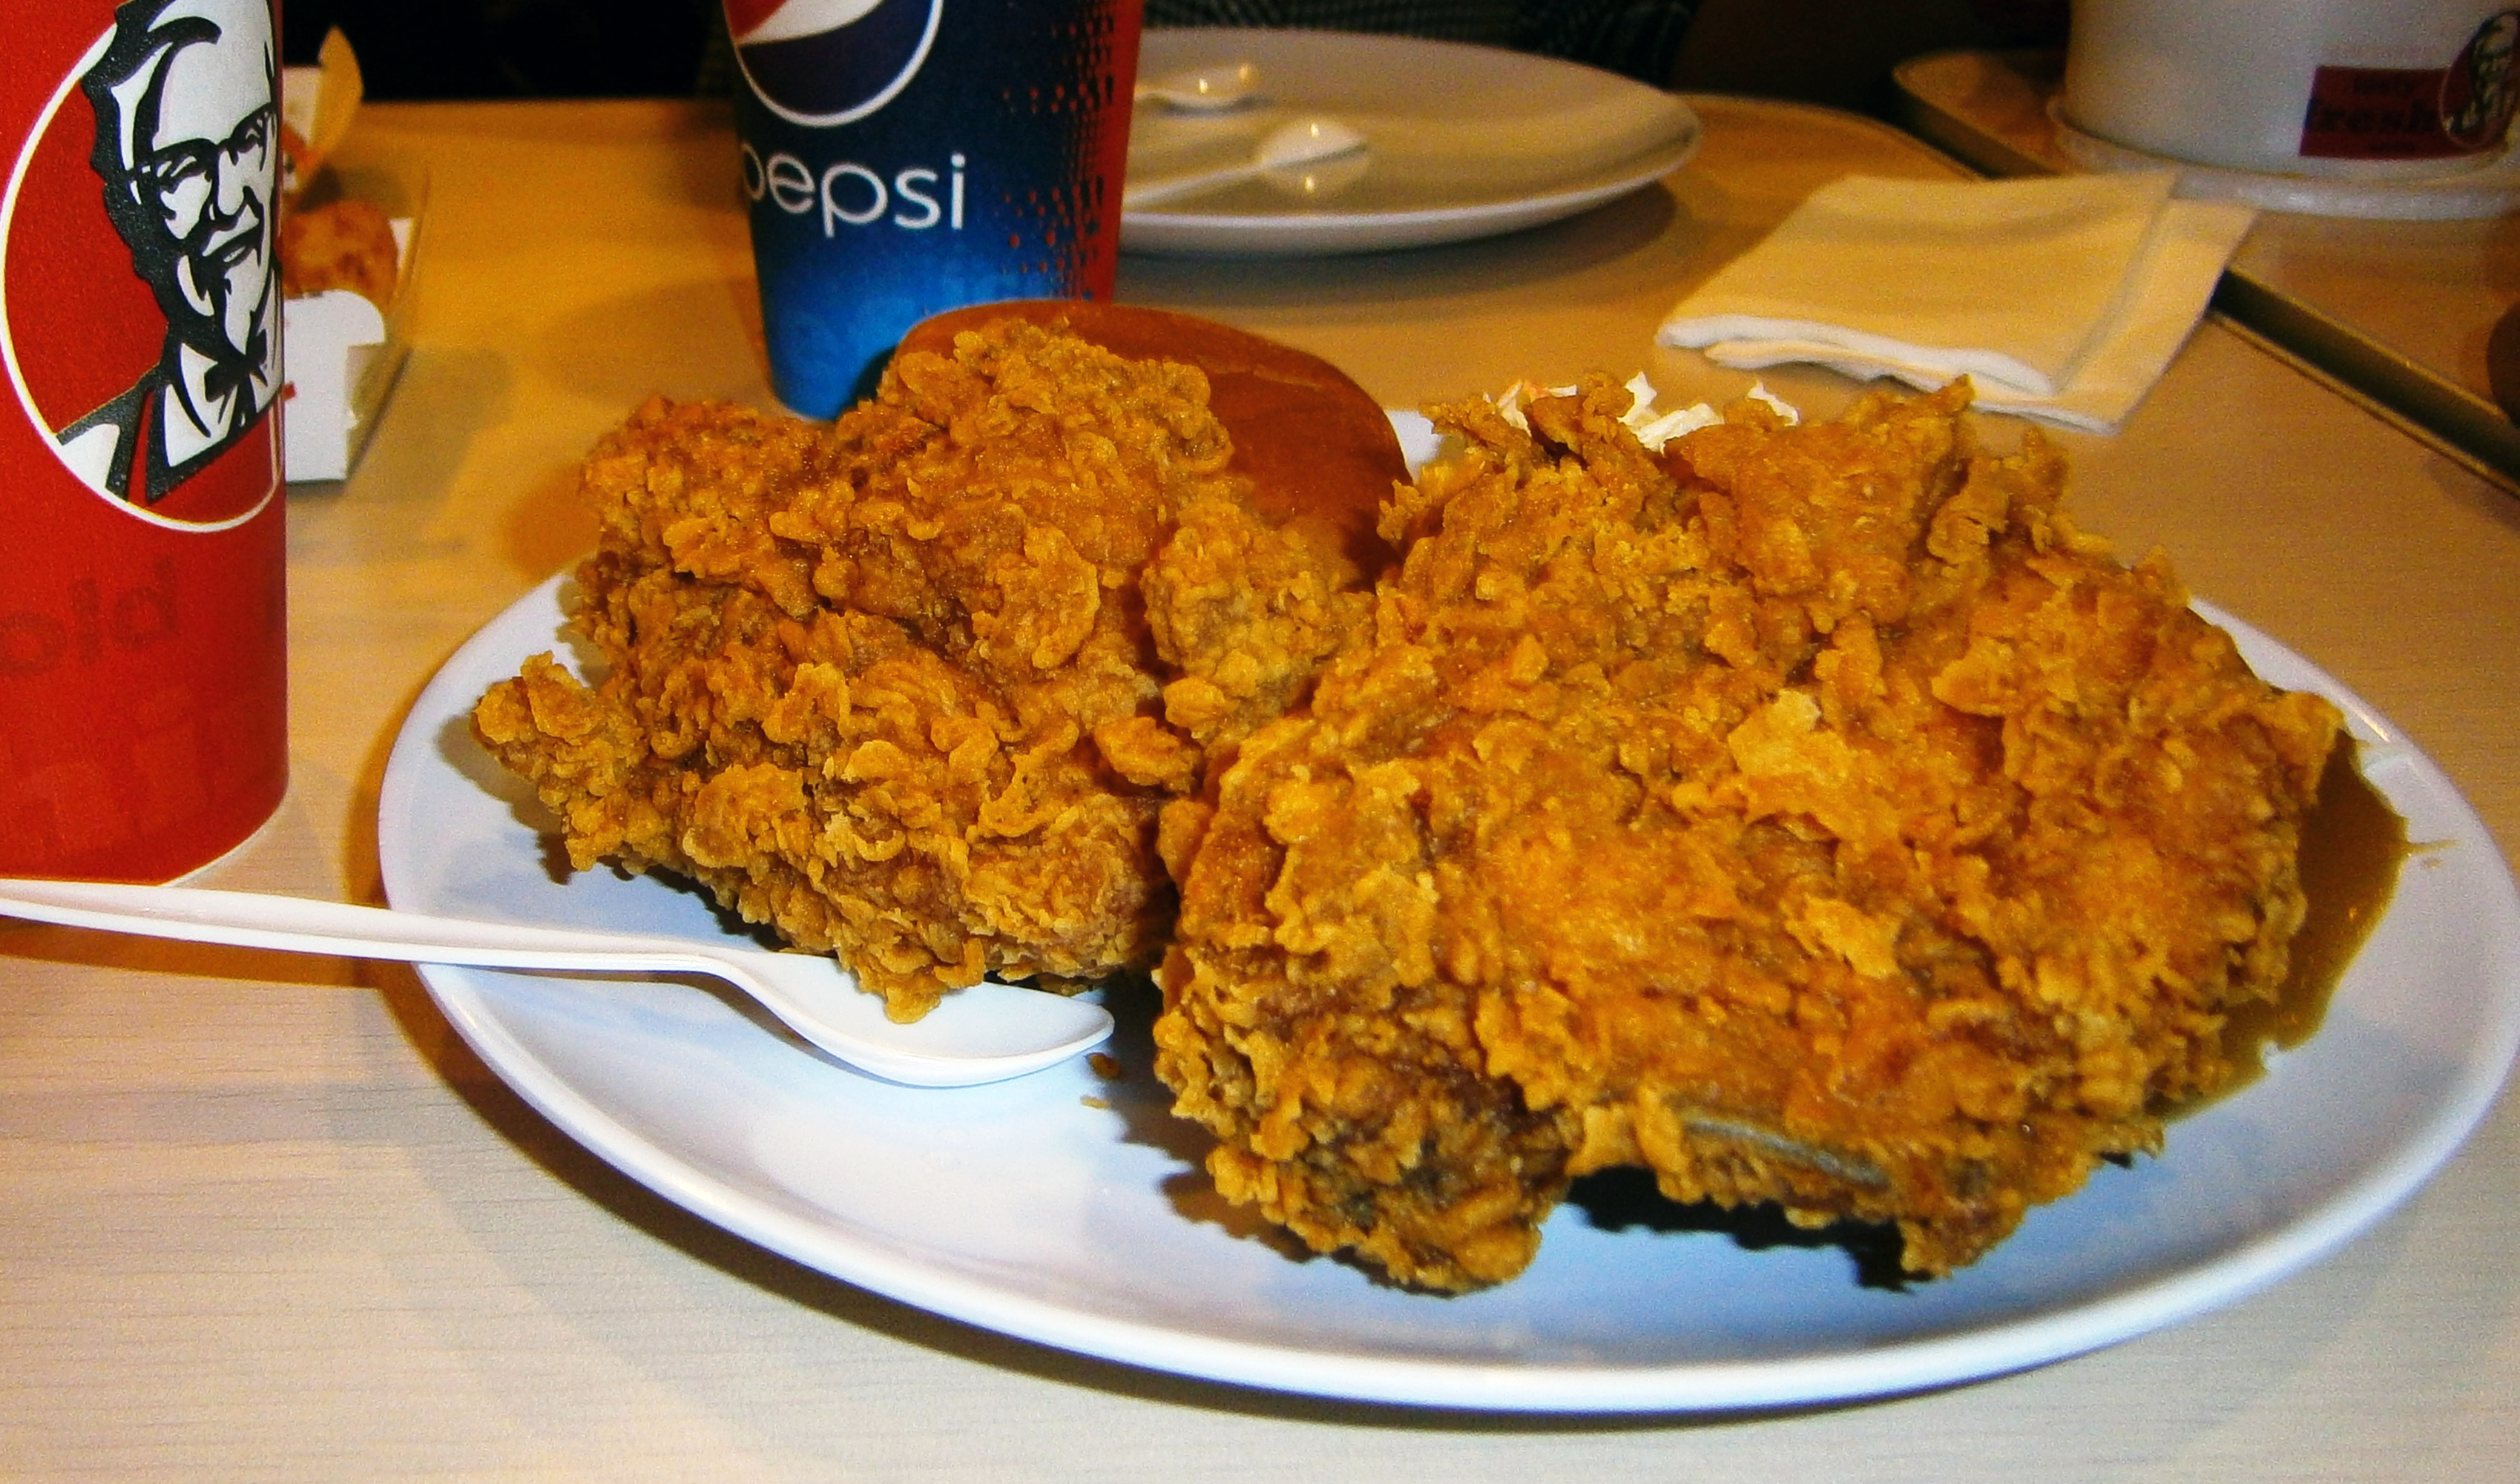 Kfc Hot Wings Images & Pictures - Becuo